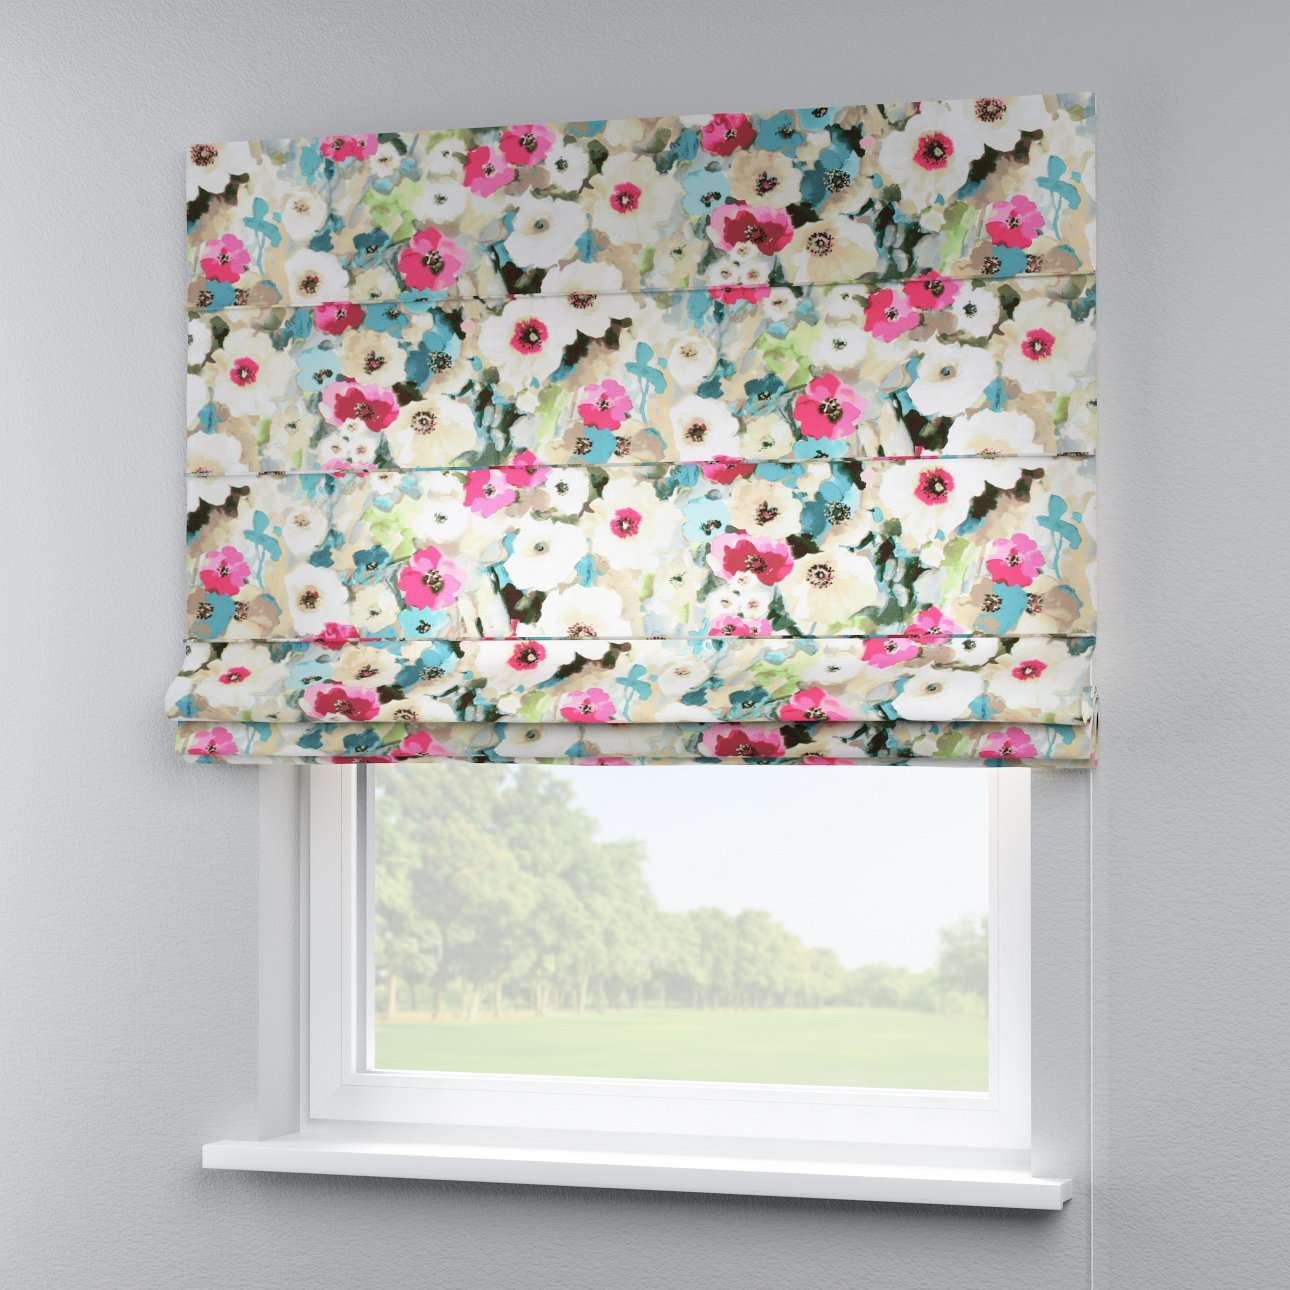 Capri roman blind 80 x 170 cm (31.5 x 67 inch) in collection Monet, fabric: 140-08